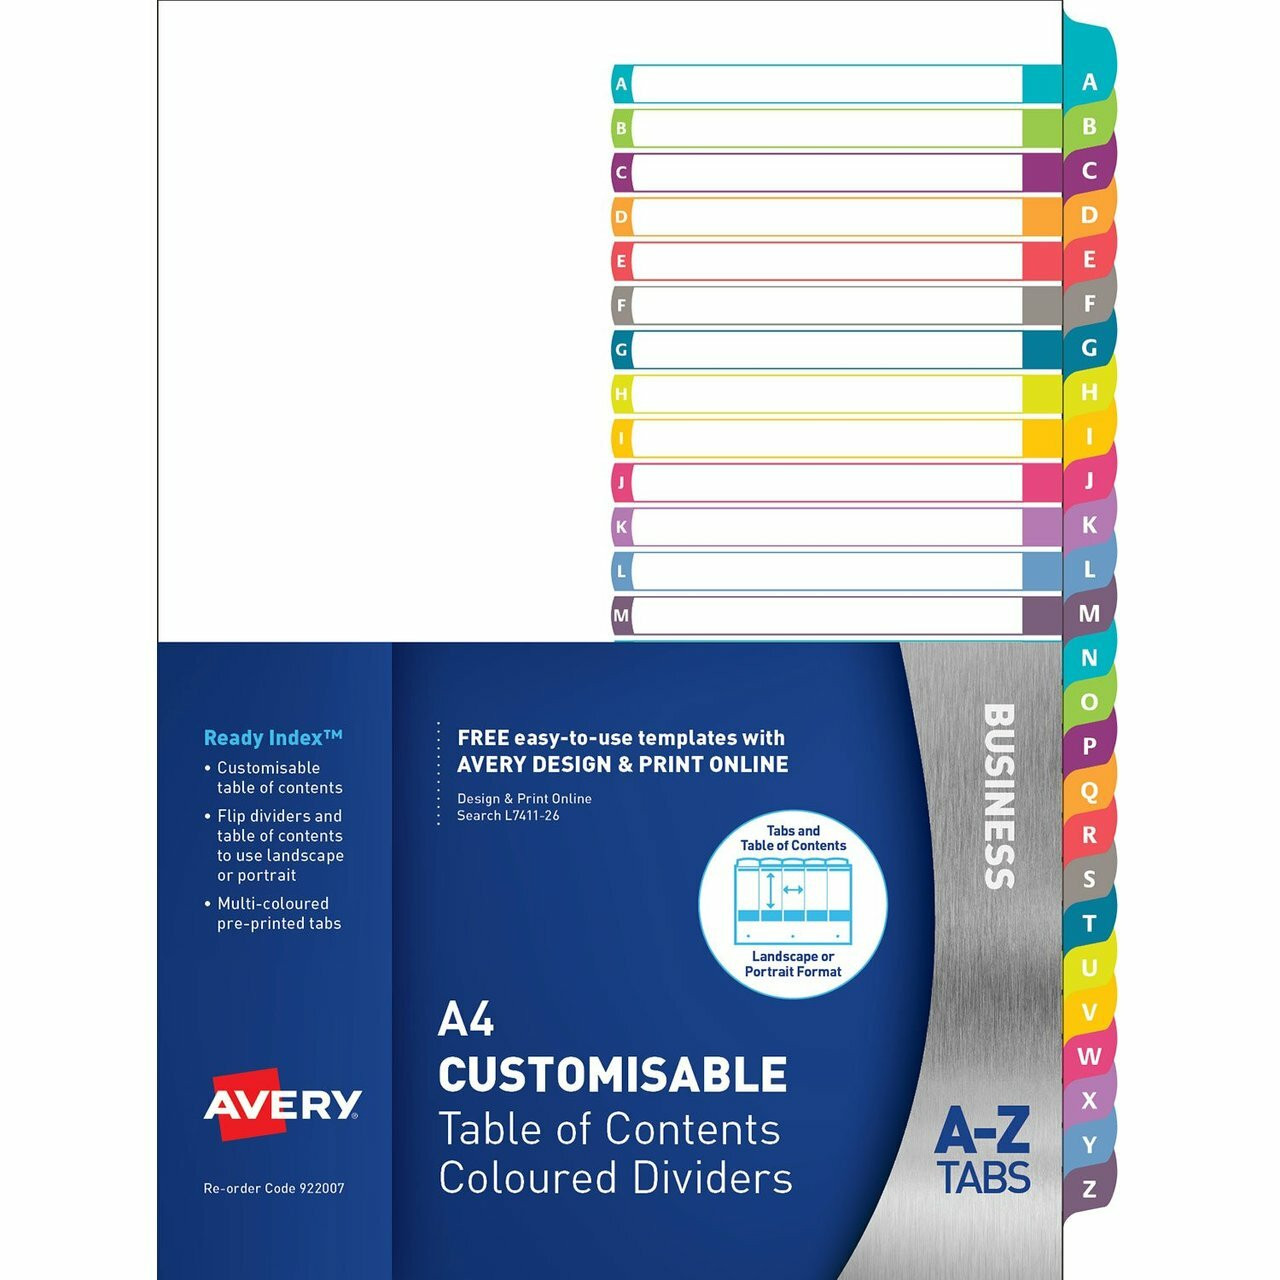 AVERY 922007 CUSTOMISABLE TABLE OF CONTENTS DIVIDERS A-Z TABS  LANDSCAPE/PORTRAIT READY INDEX (922007 / L7411-26)